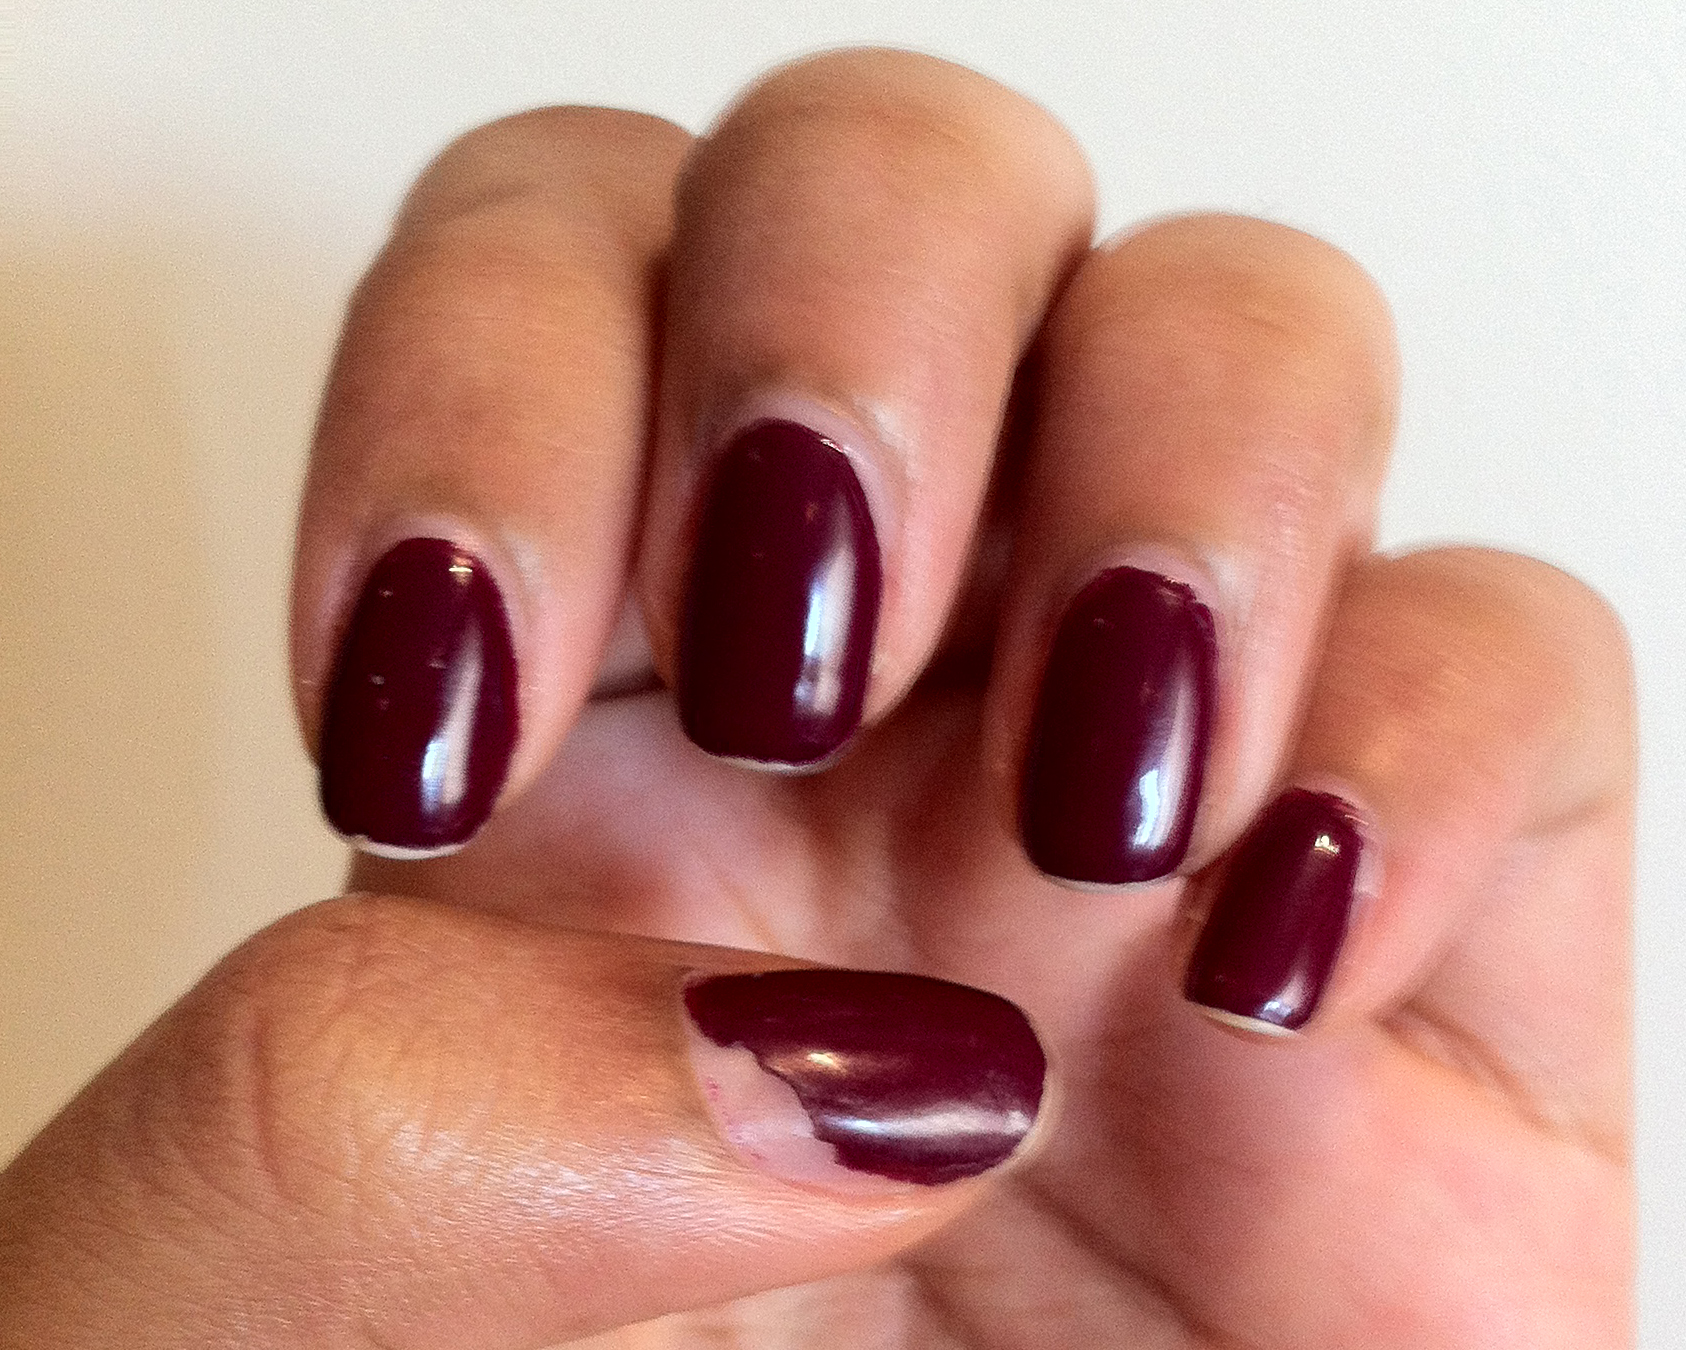 How to look after nails after gel ones – Great photo blog about ...